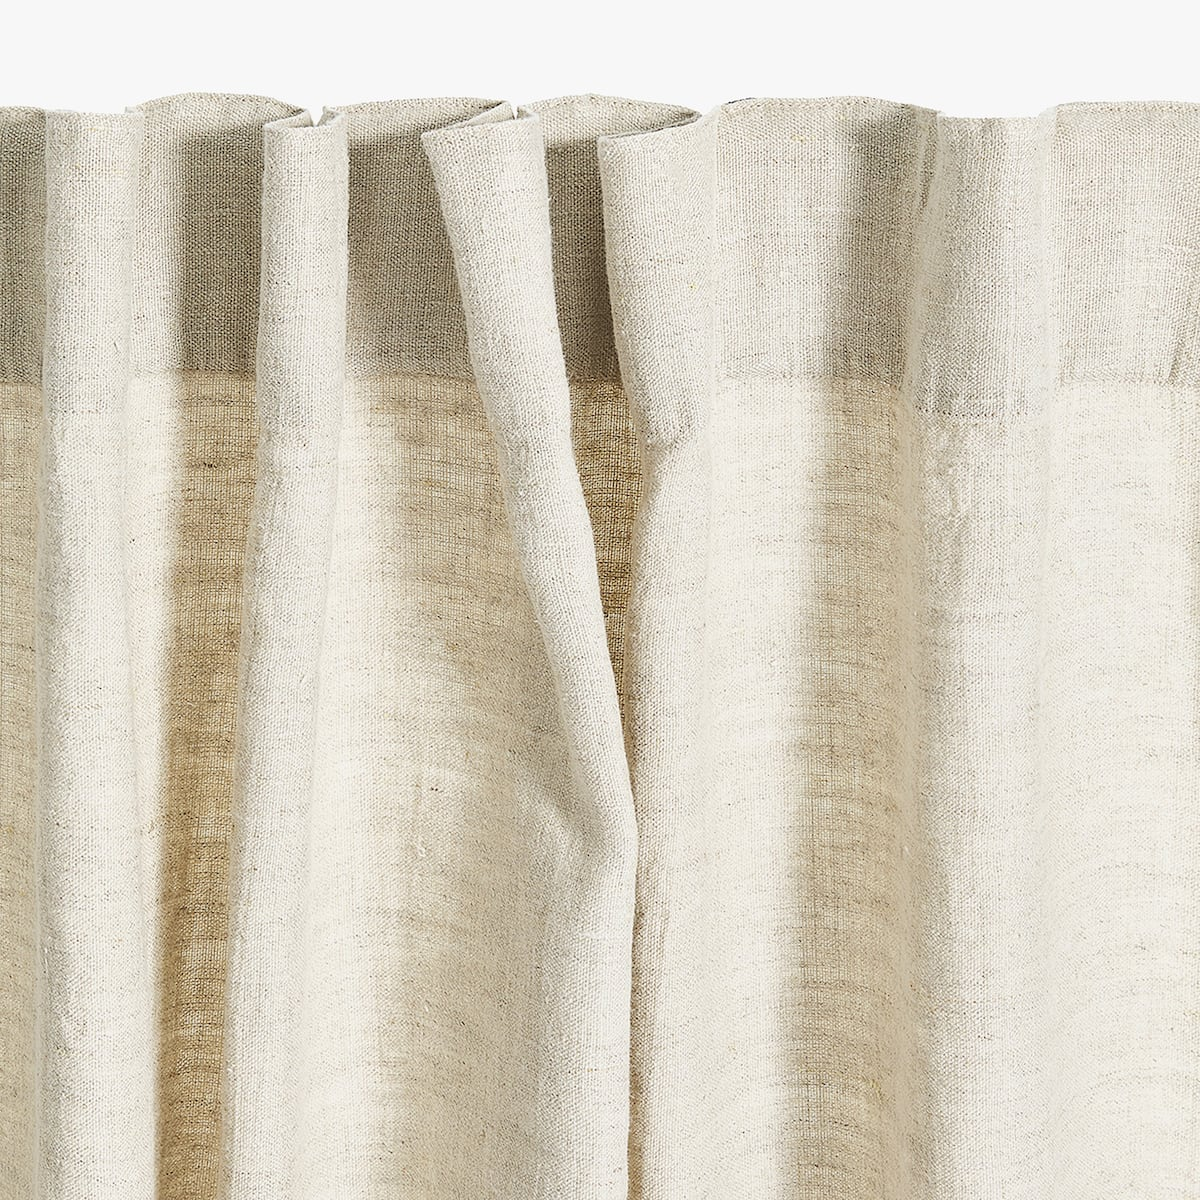 + Image 4 Of The Product LINEN CURTAIN WITH STRIPED PANEL